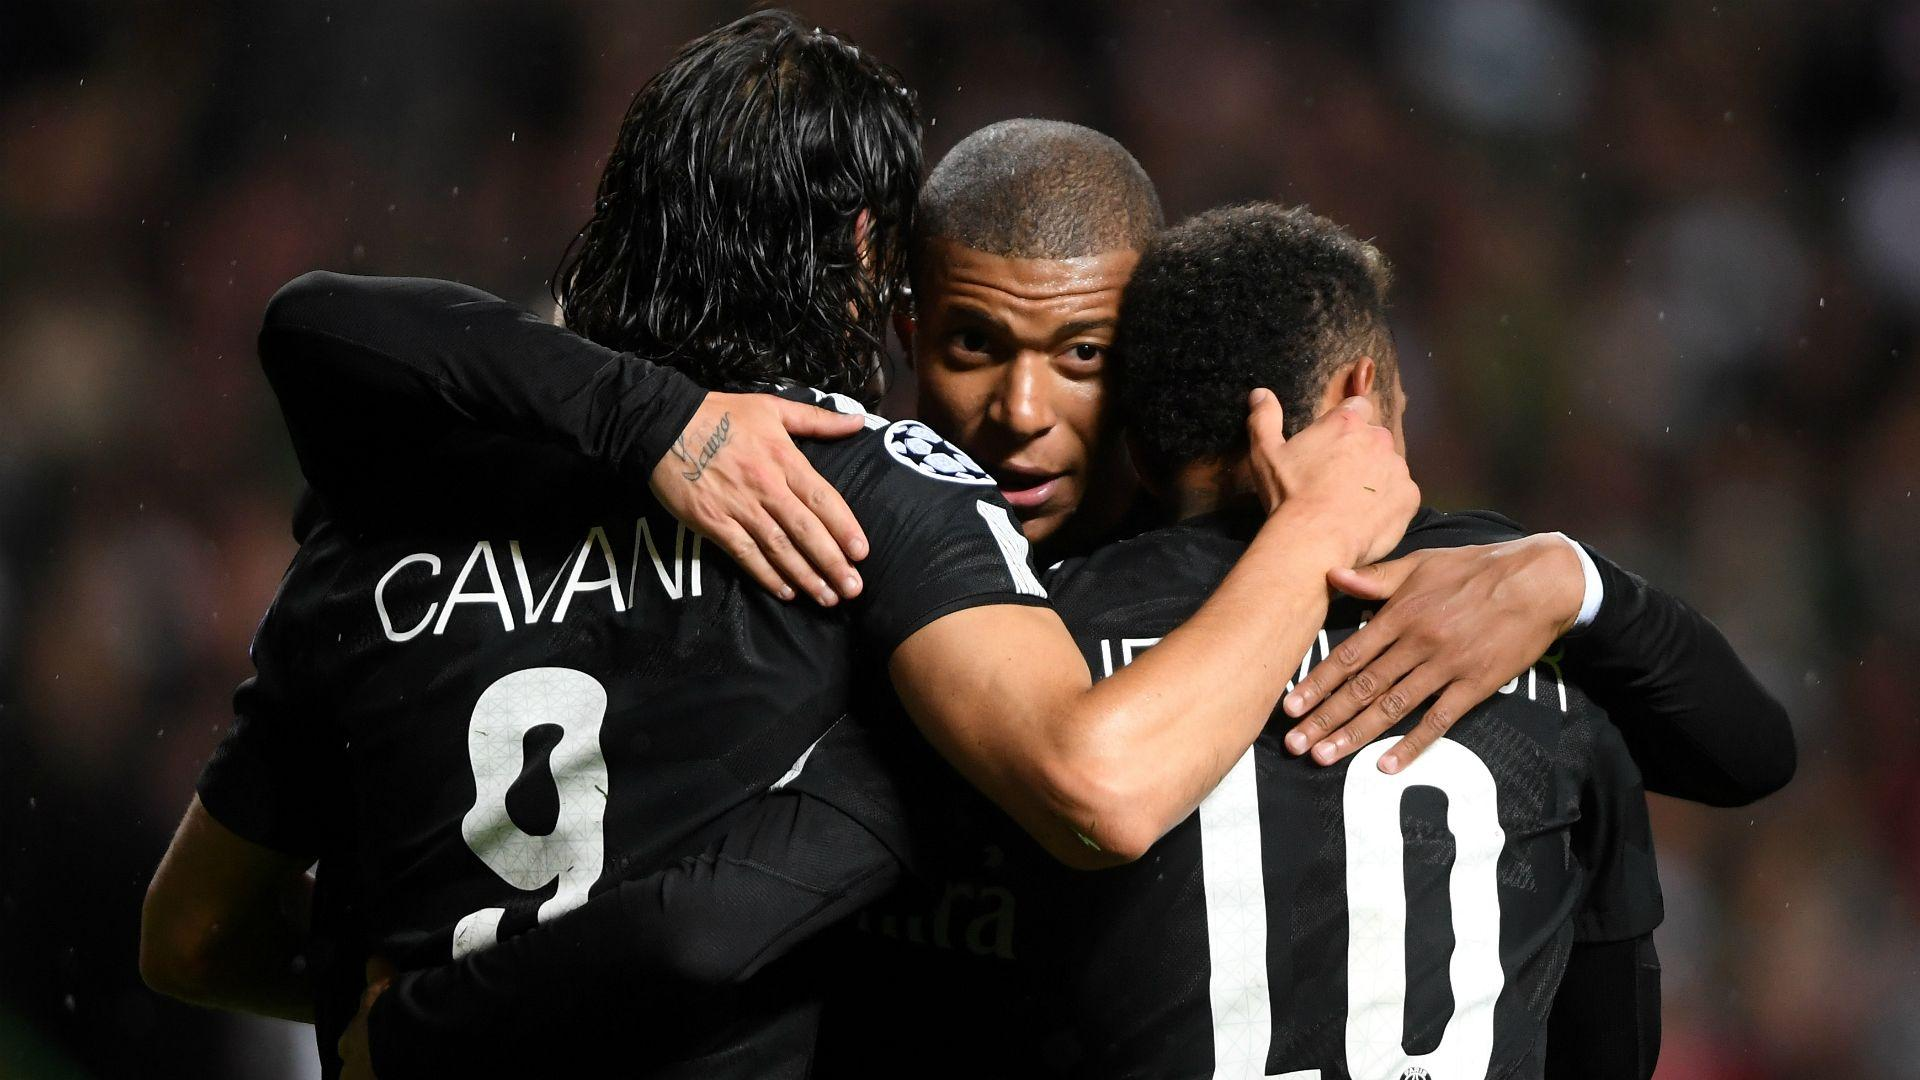 Playing with PSG stars Cavani and Neymar is easy, says Mbappe